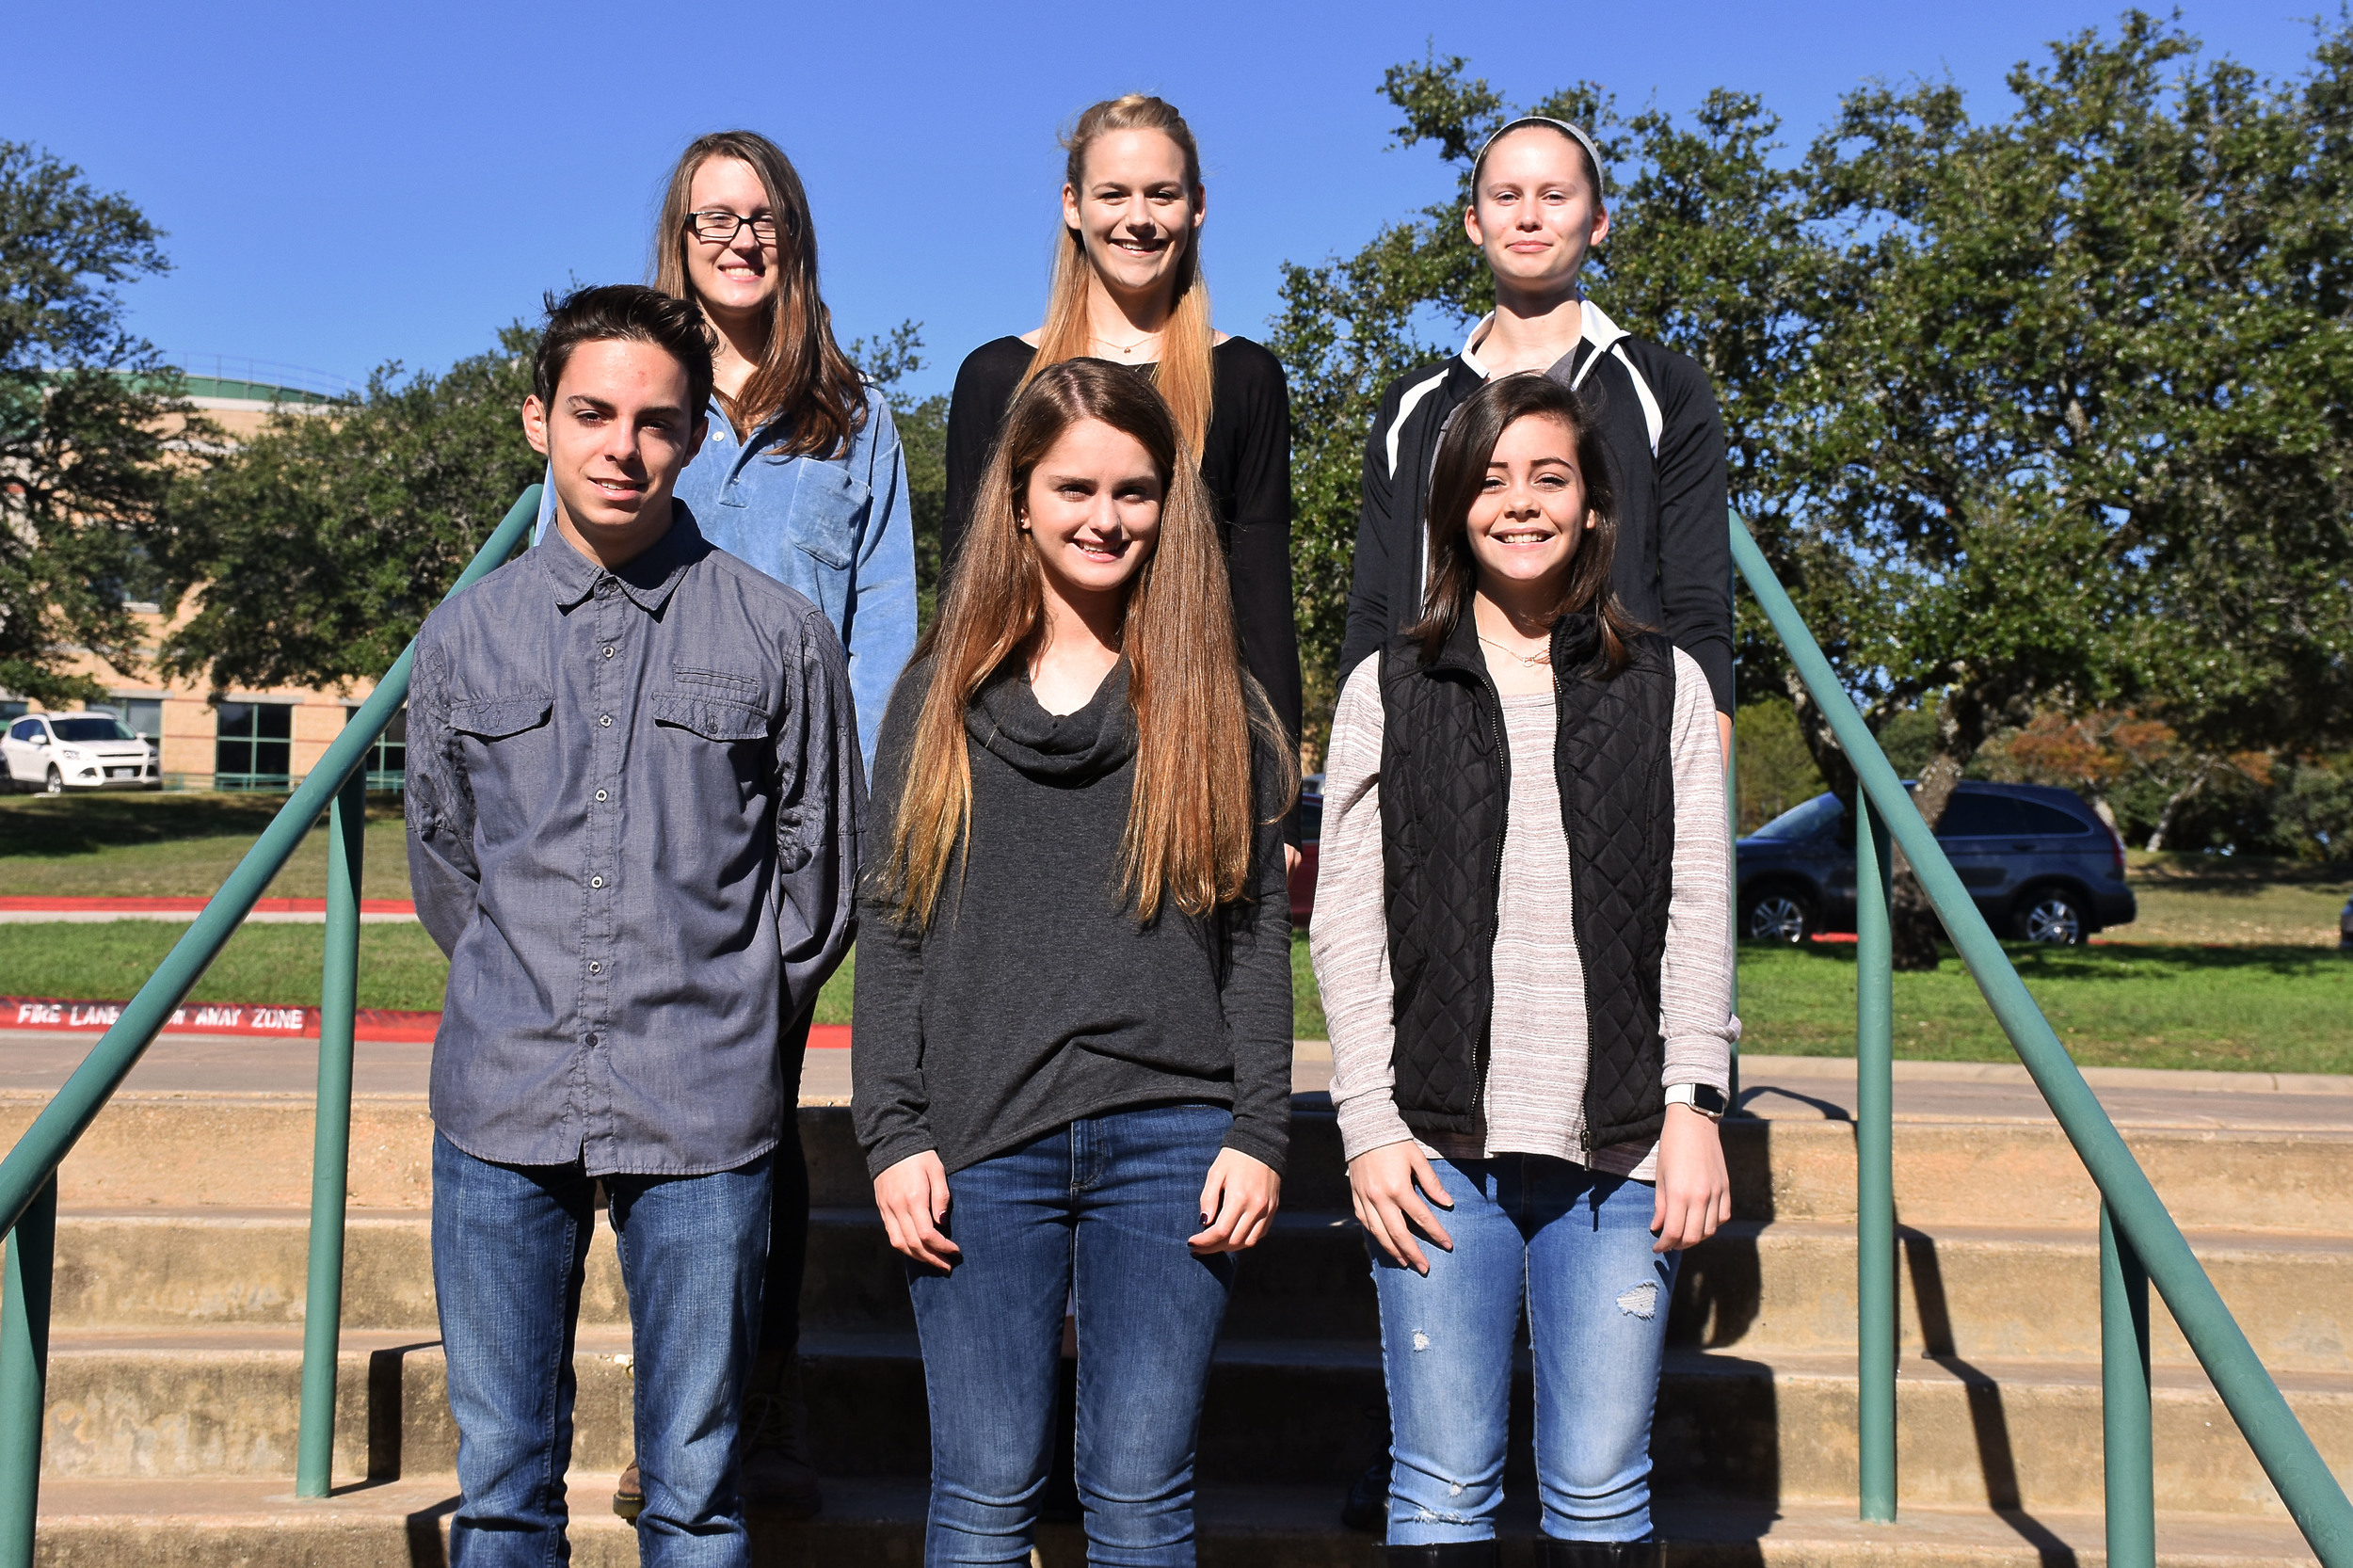 Front row, from left: David Muse, Natalie Evans, and Allee Johnson. Back row, from left: Audrey Larcher, Emily Pustelnyk, and Kathleen Kalmbach.